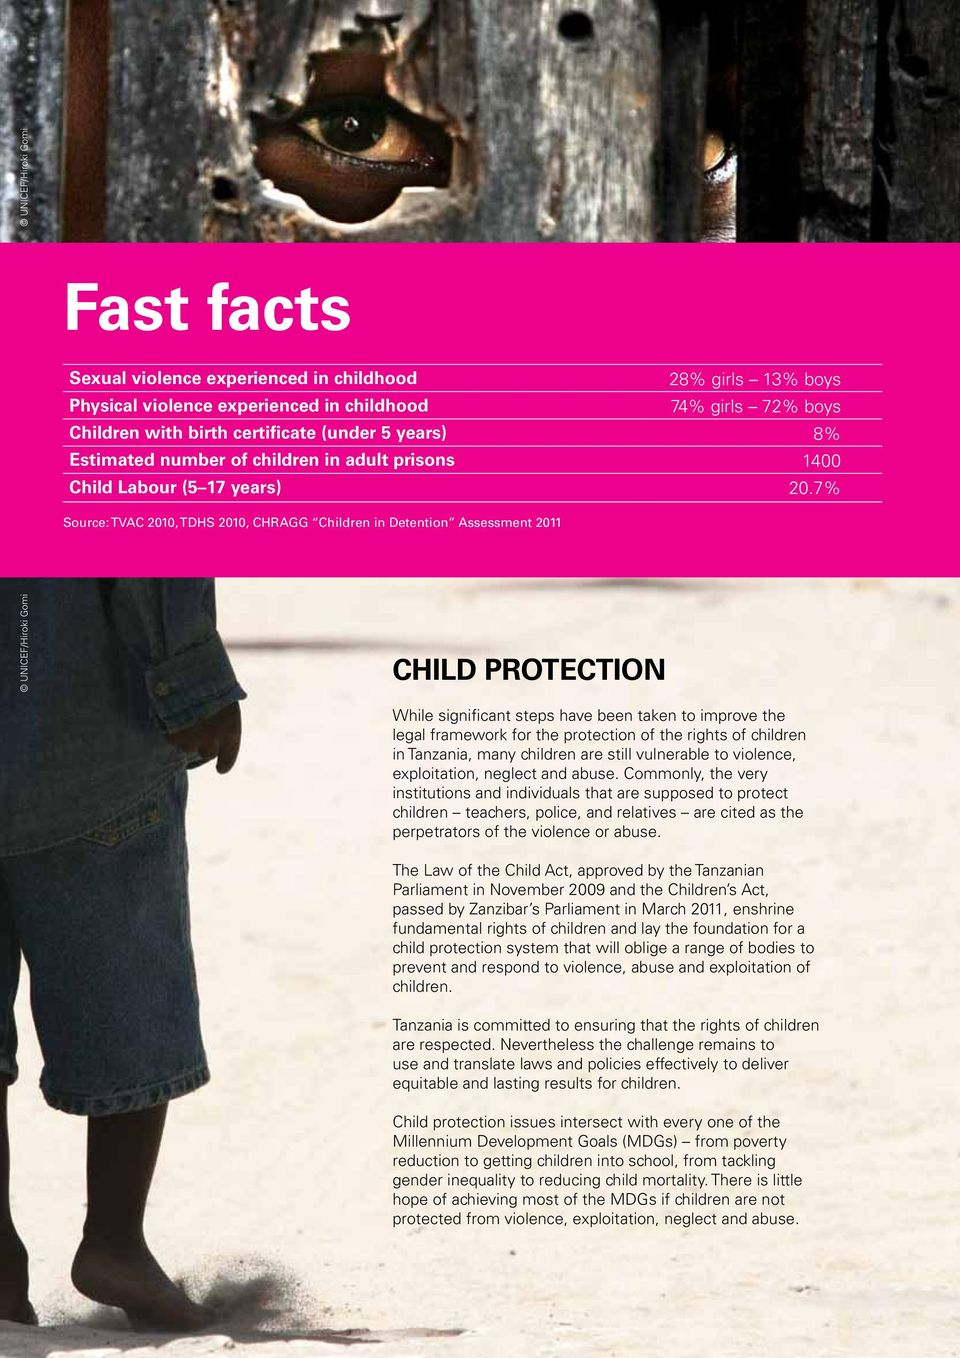 7% Source: TVAC 2010, TDHS 2010, CHRAGG Children in Detention Assessment 2011 Child Protection While significant steps have been taken to improve the legal framework for the protection of the rights